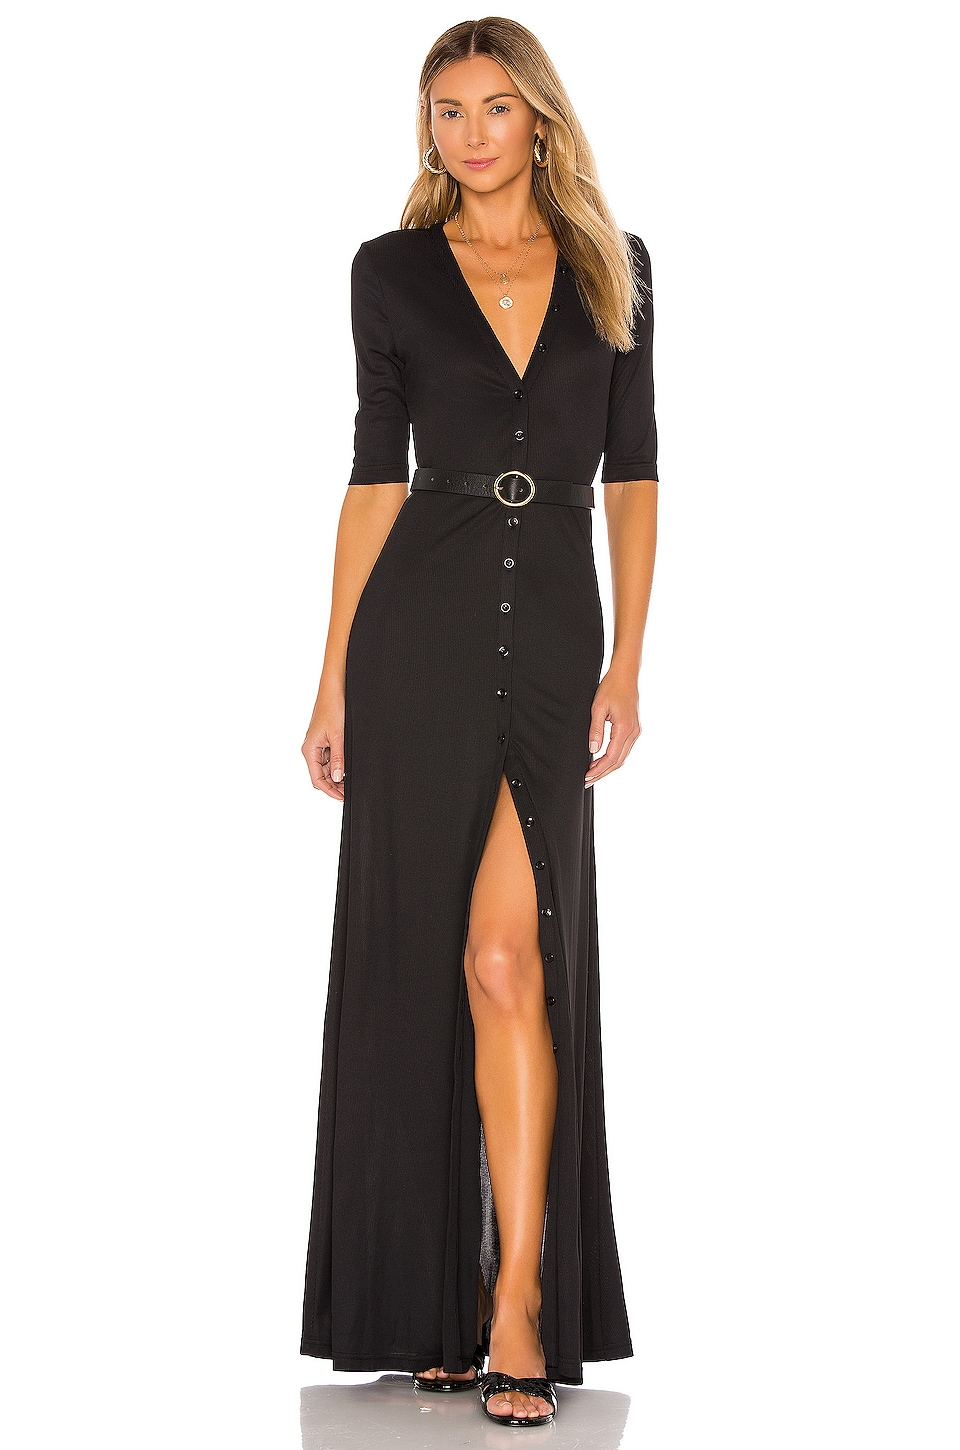 The Esperanza Maxi Dress             L'Academie                                                                                                       CA$ 226.98 4